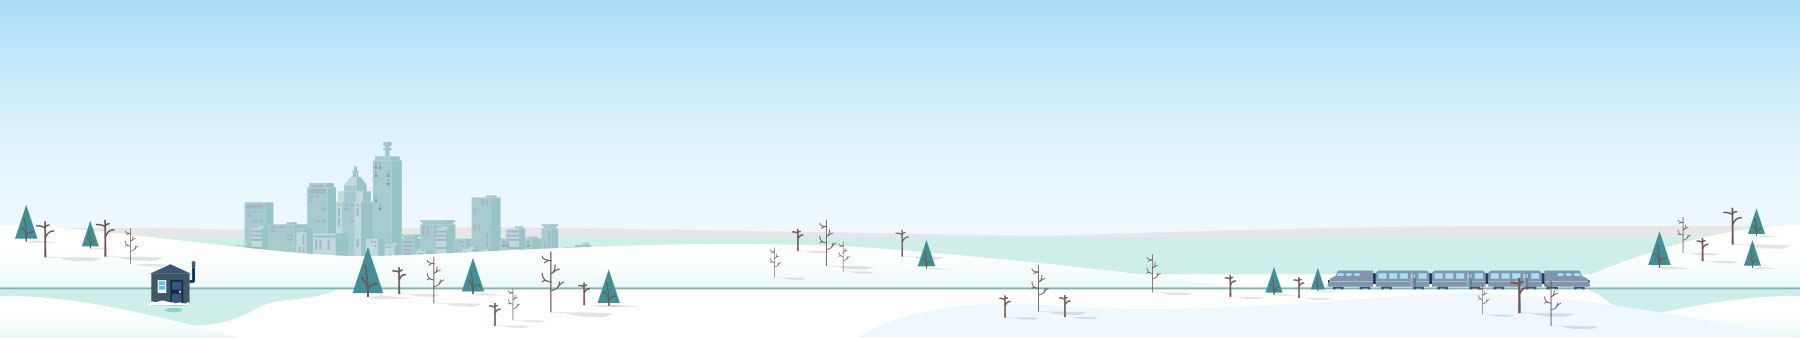 Kilowatt Way winter background illustration detail